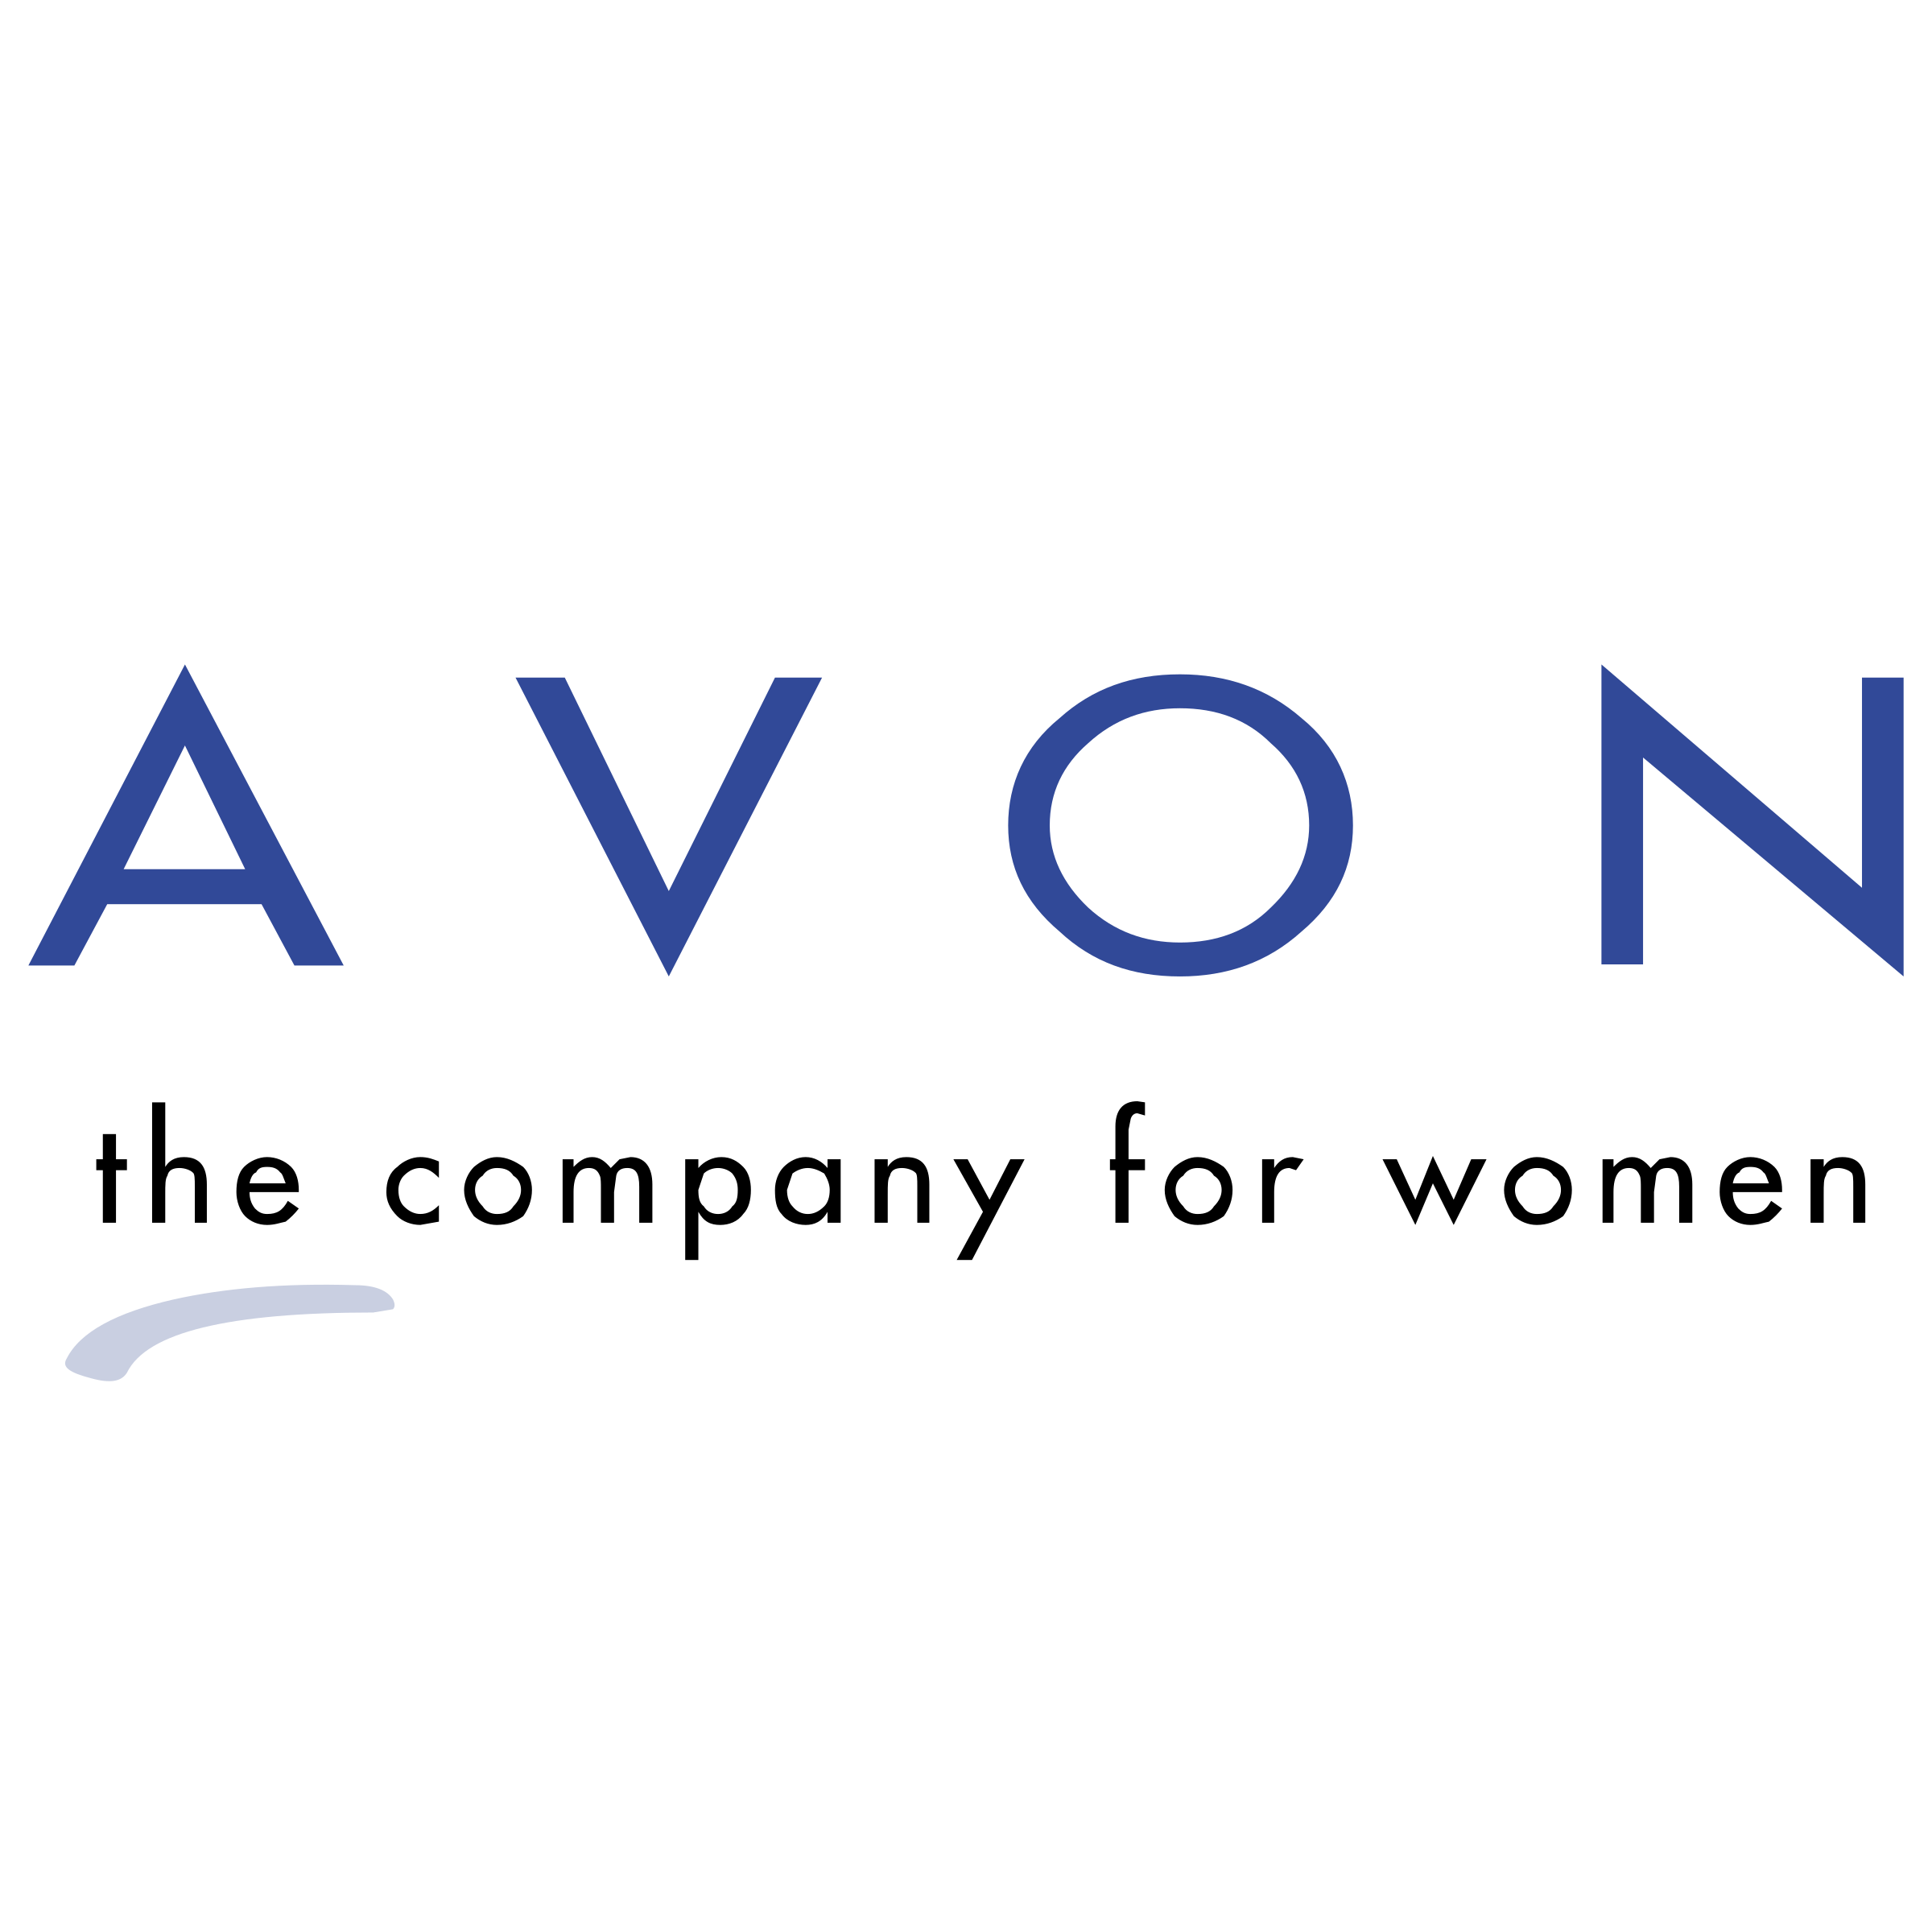 Avon Logo PNG Transparent & SVG Vector.